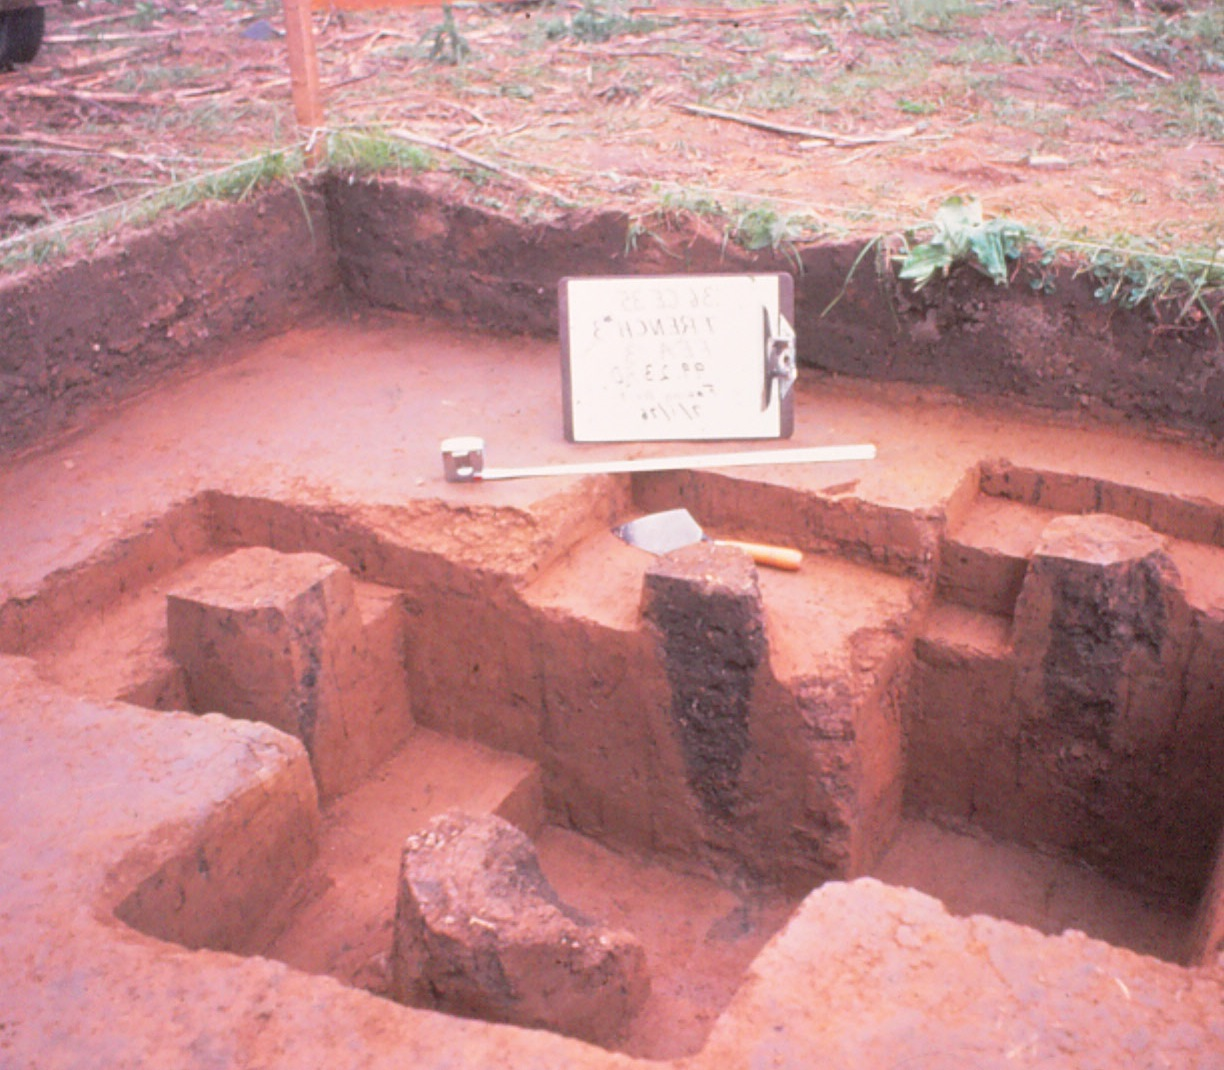 another photo of the excavation work